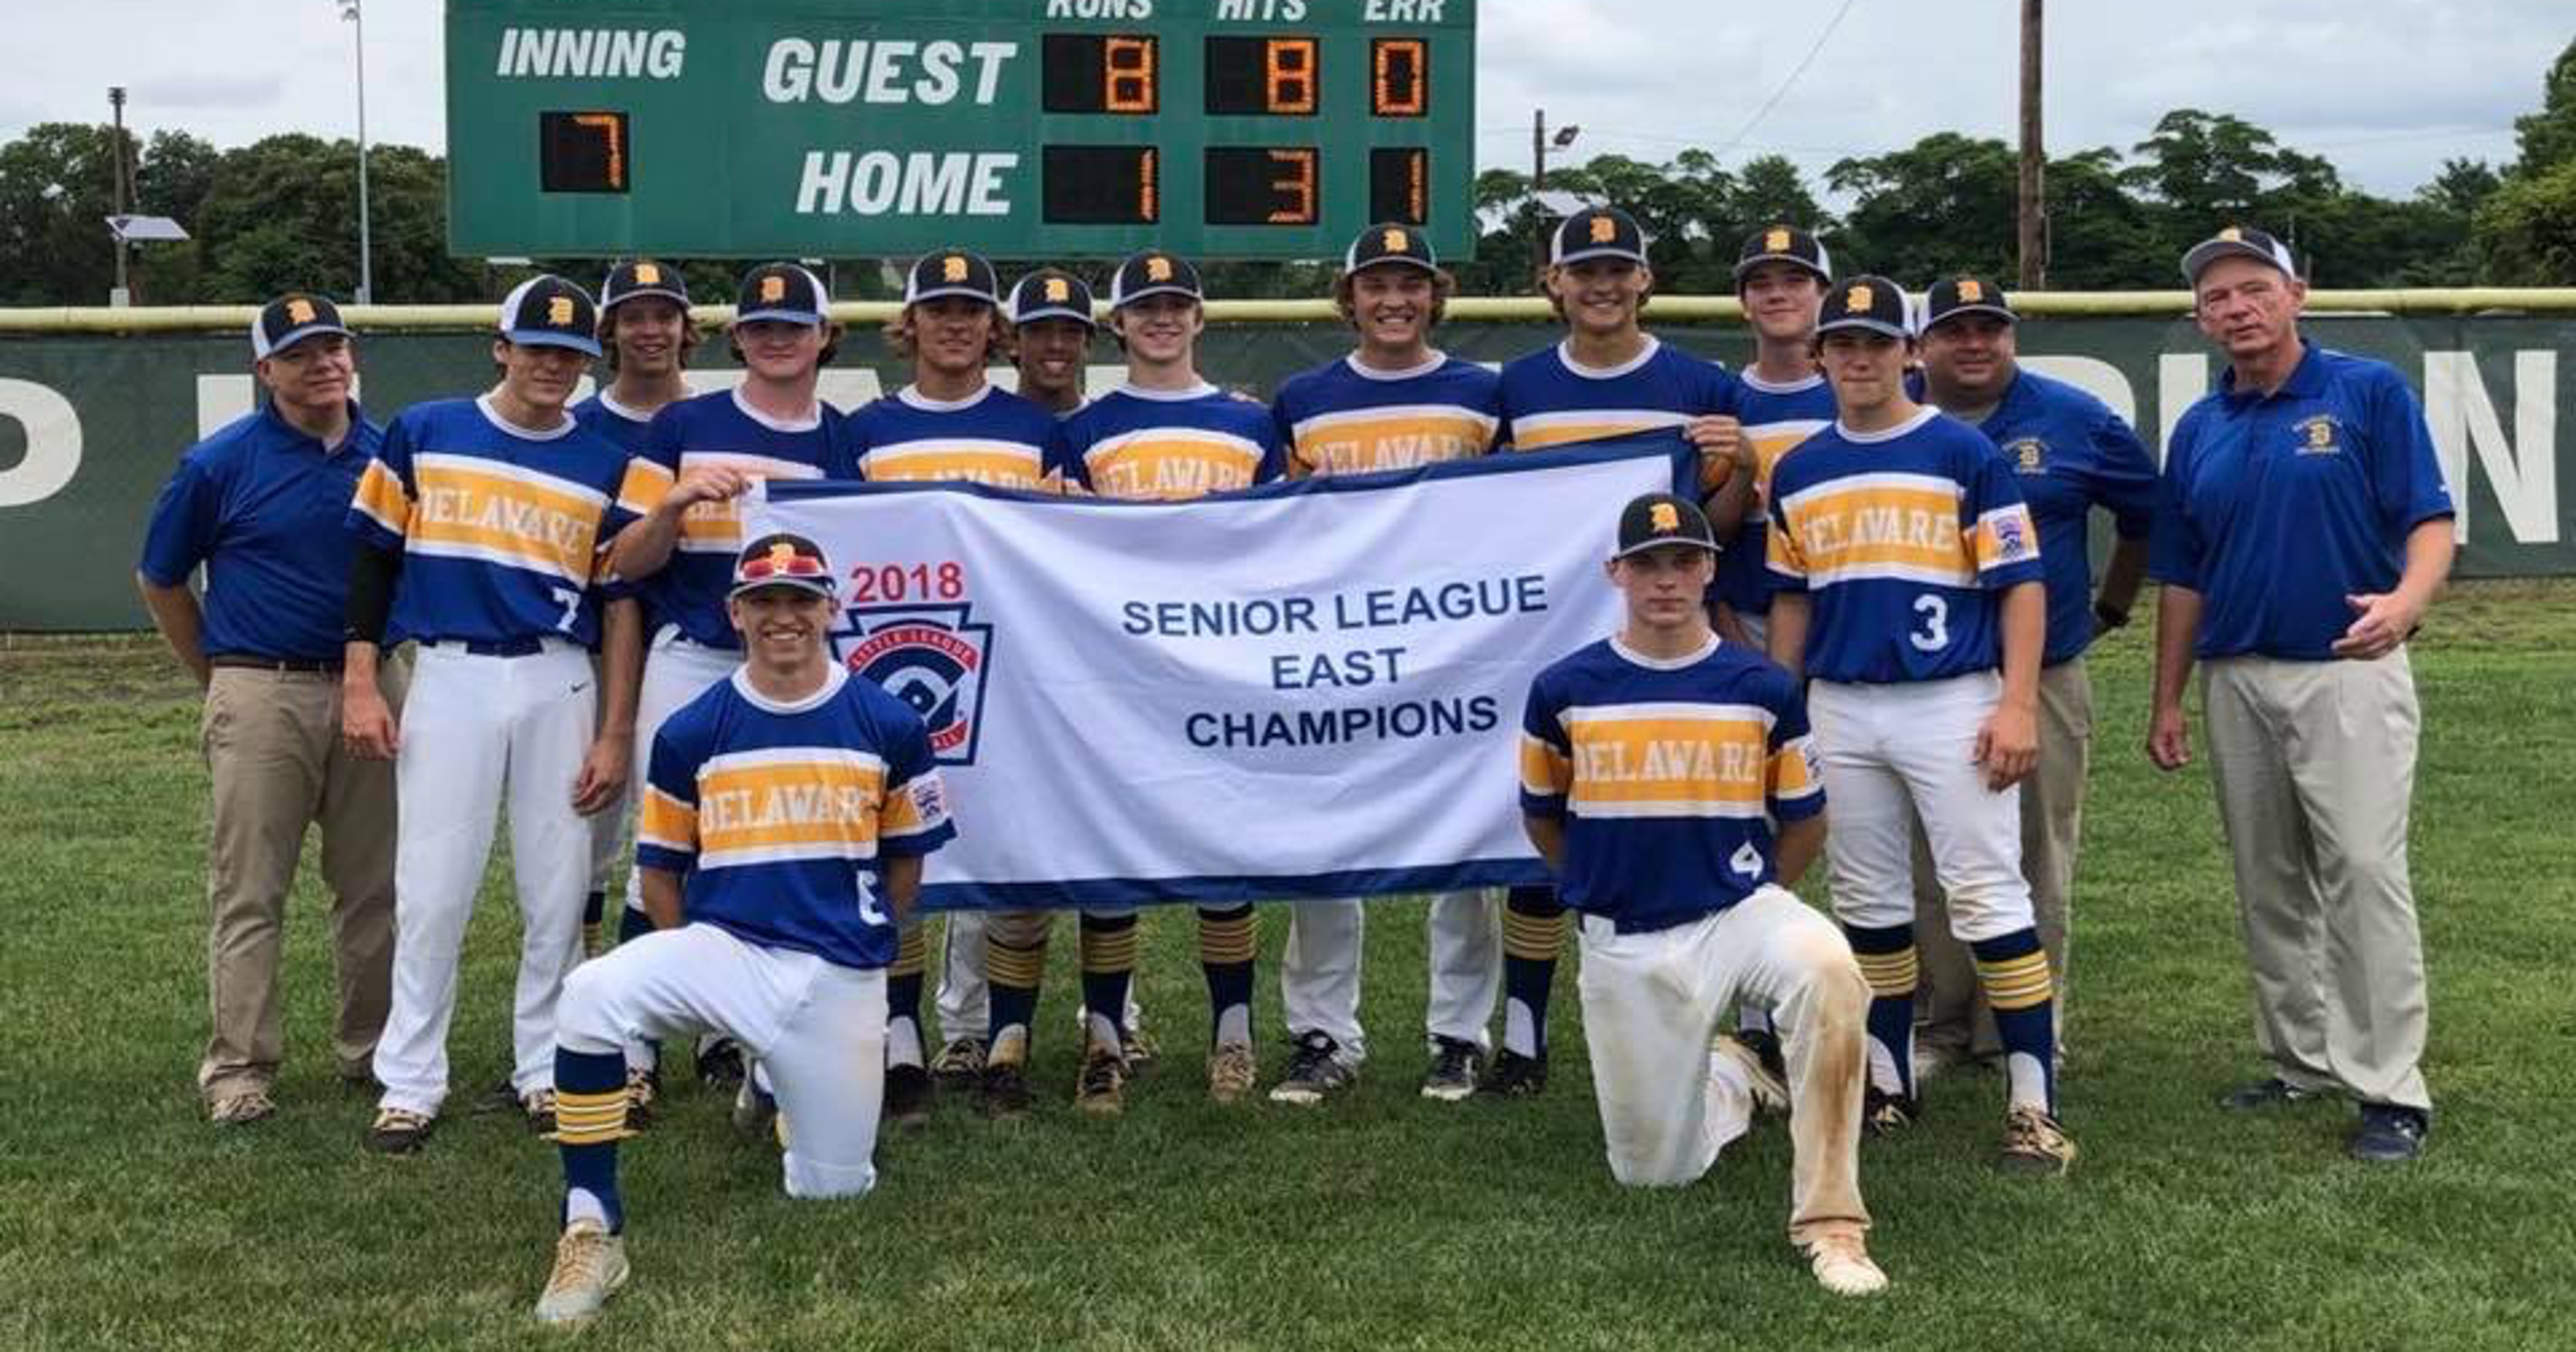 Naamans to play for Senior League World Series title